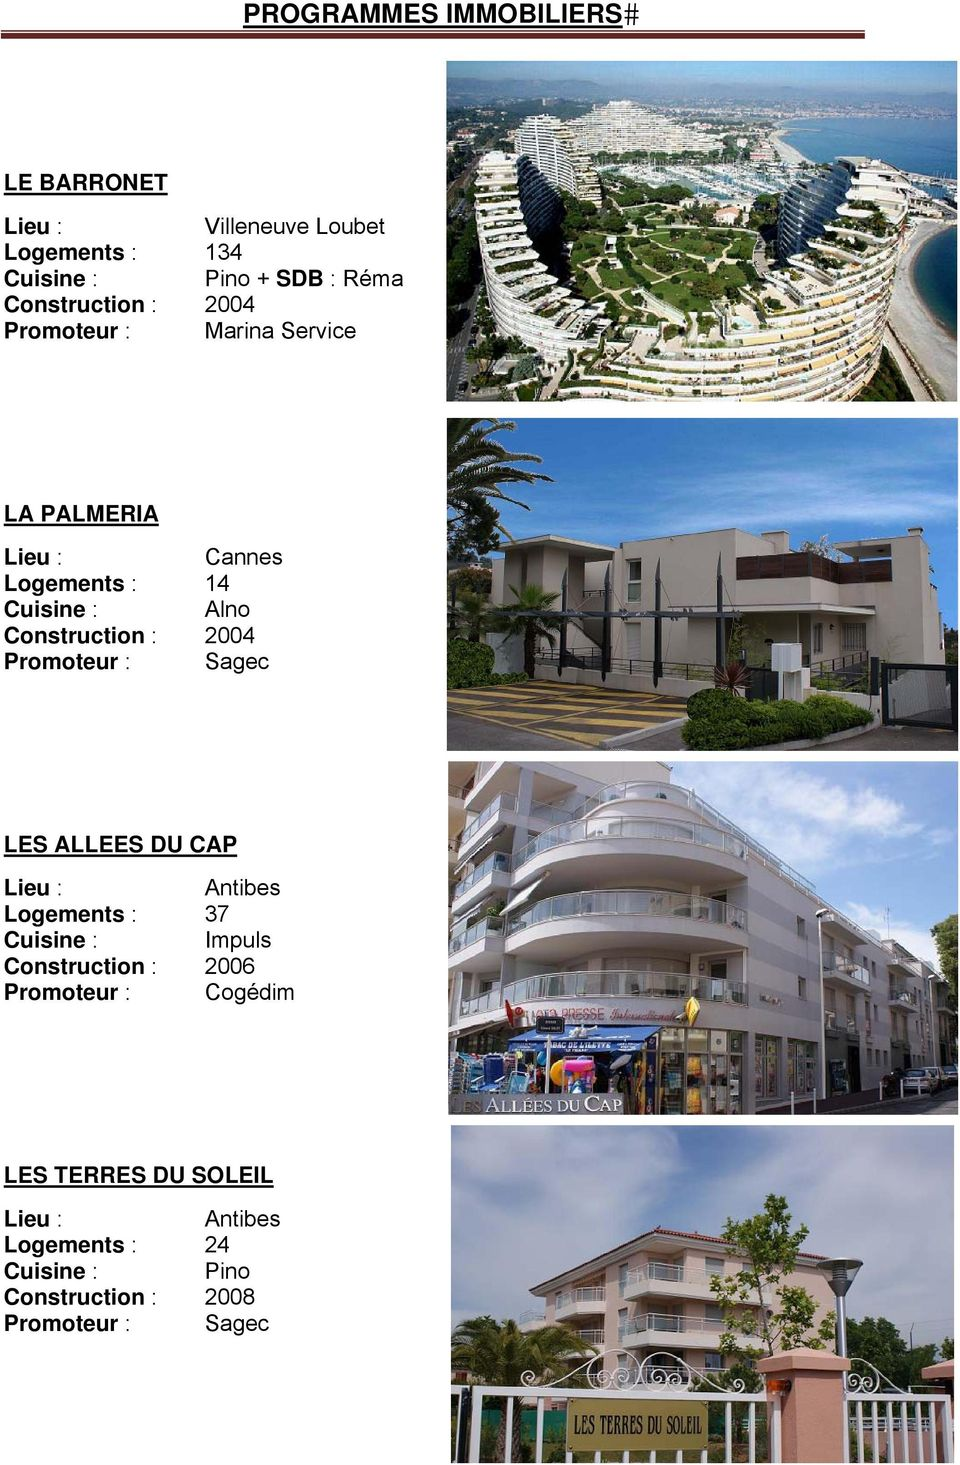 : 14 Construction : 2004 LES ALLEES DU CAP Antibes Logements : 37